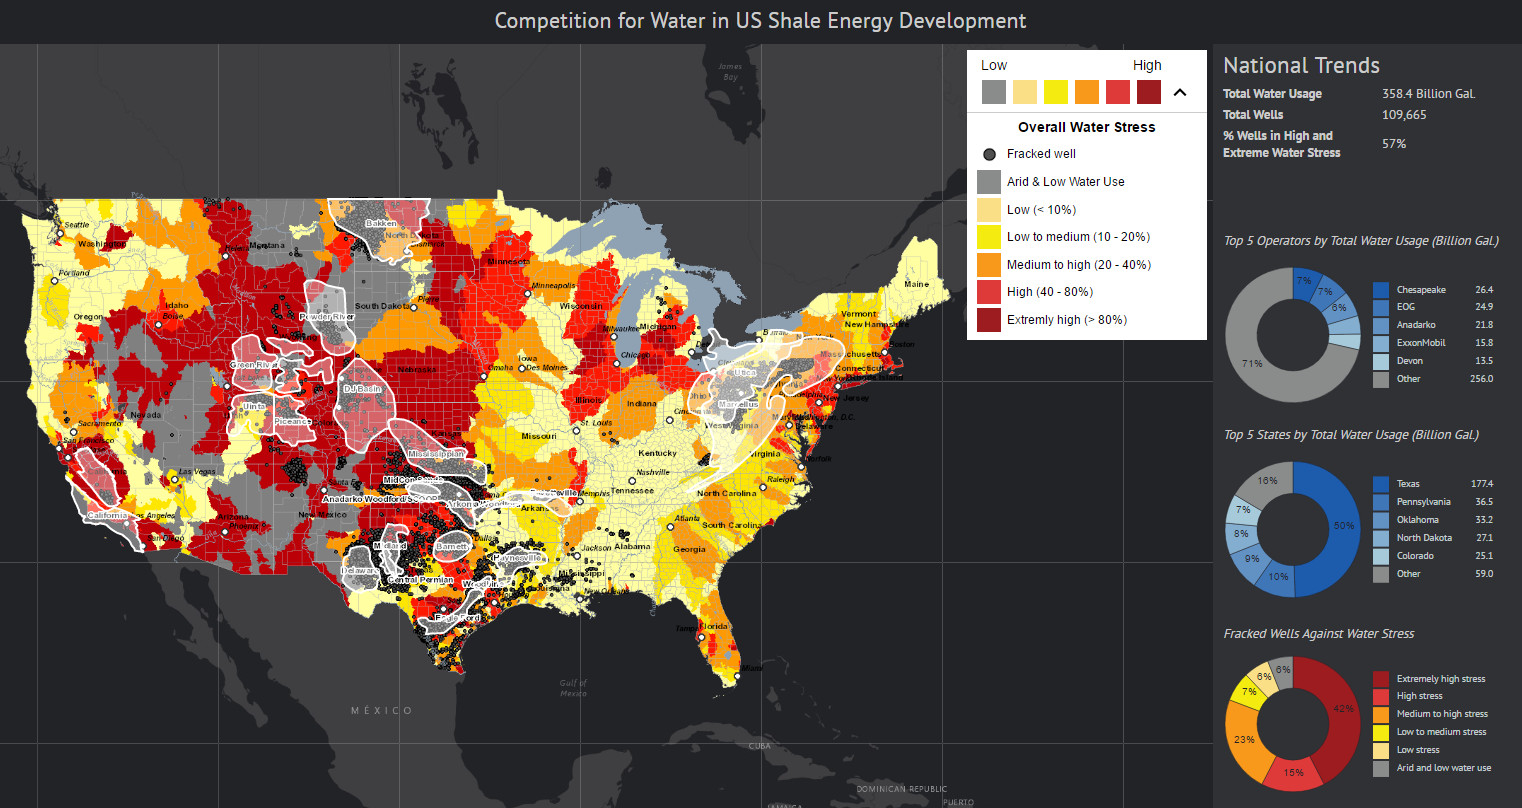 Competition for Water in United States Shale Energy Development